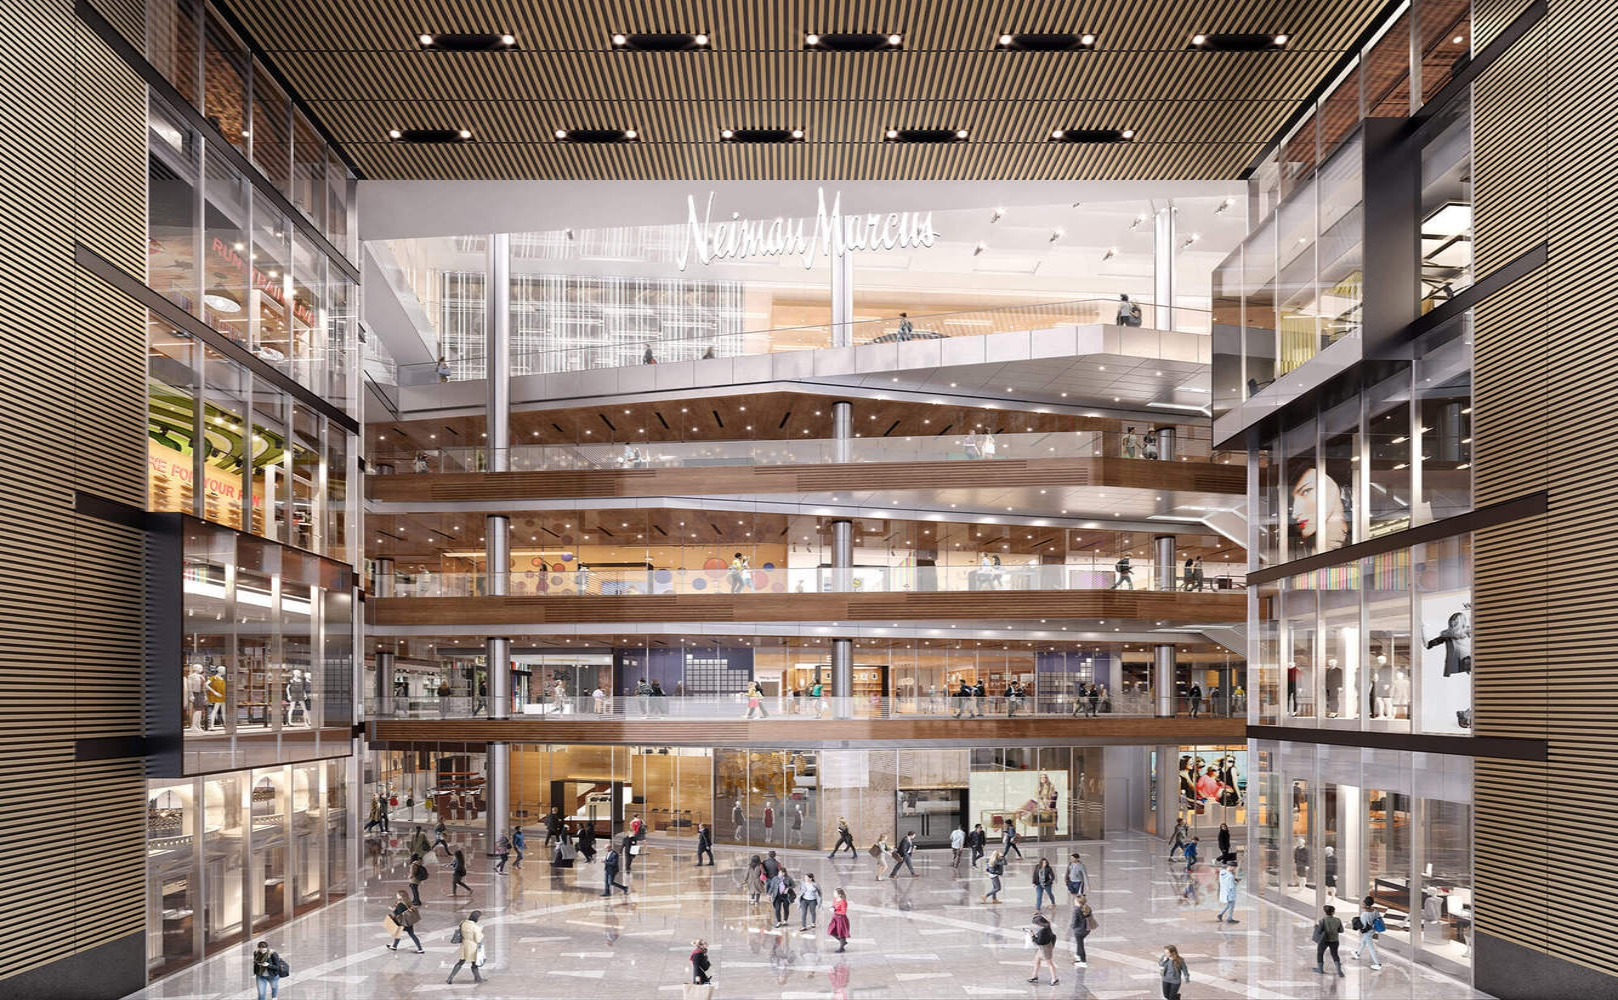 xThe-Great-Room-at-The-Shops-at-Hudson-Yards-Courtesy-Related-Oxford